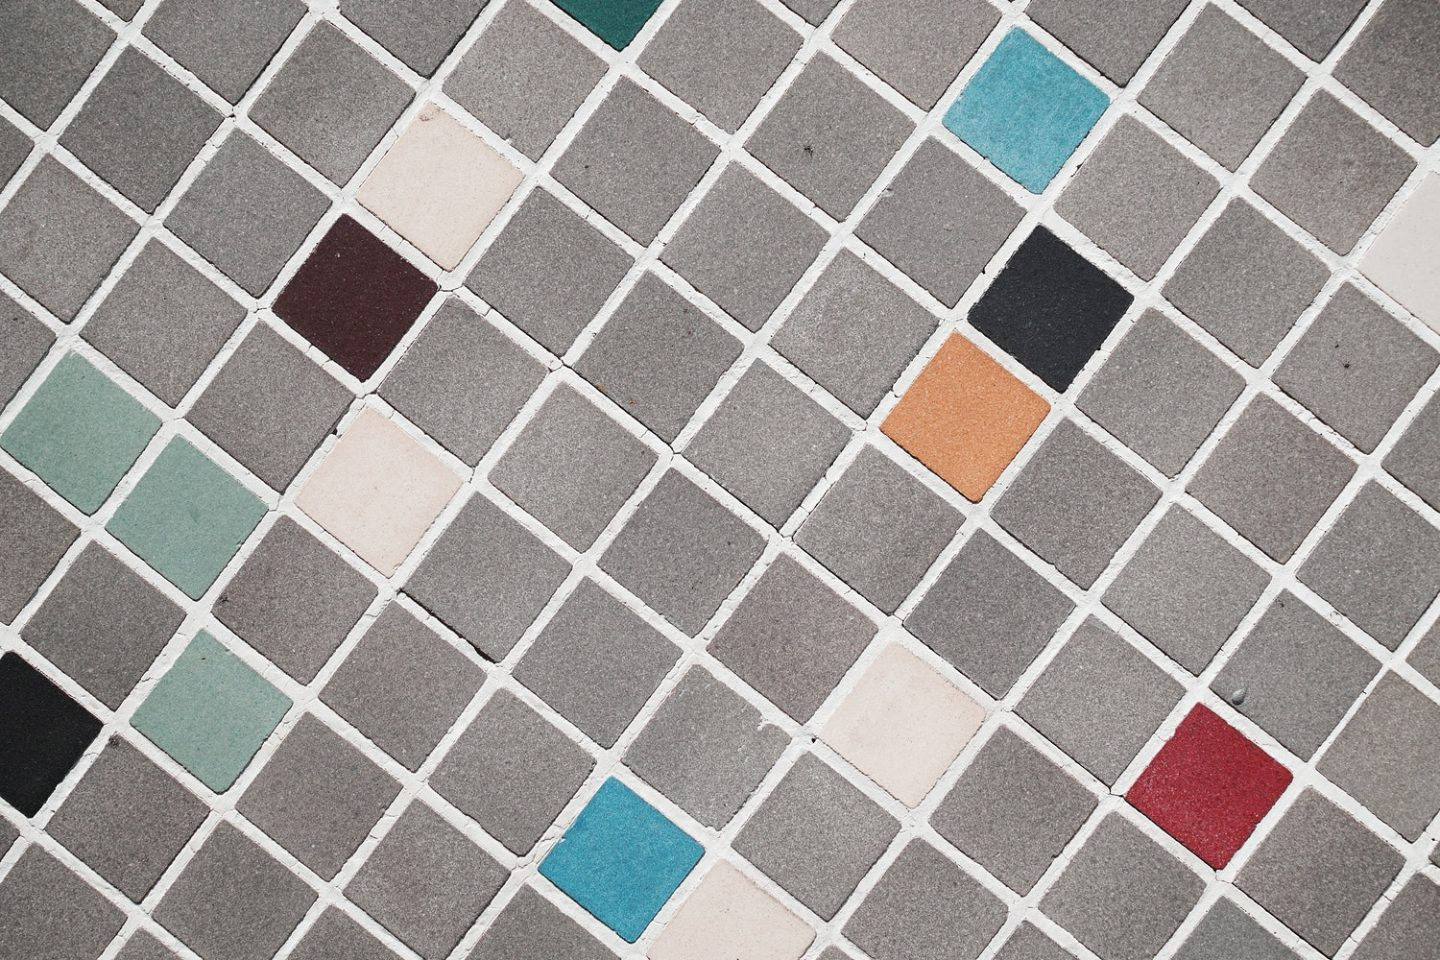 5 Different Factors to Consider When Selecting Tiles